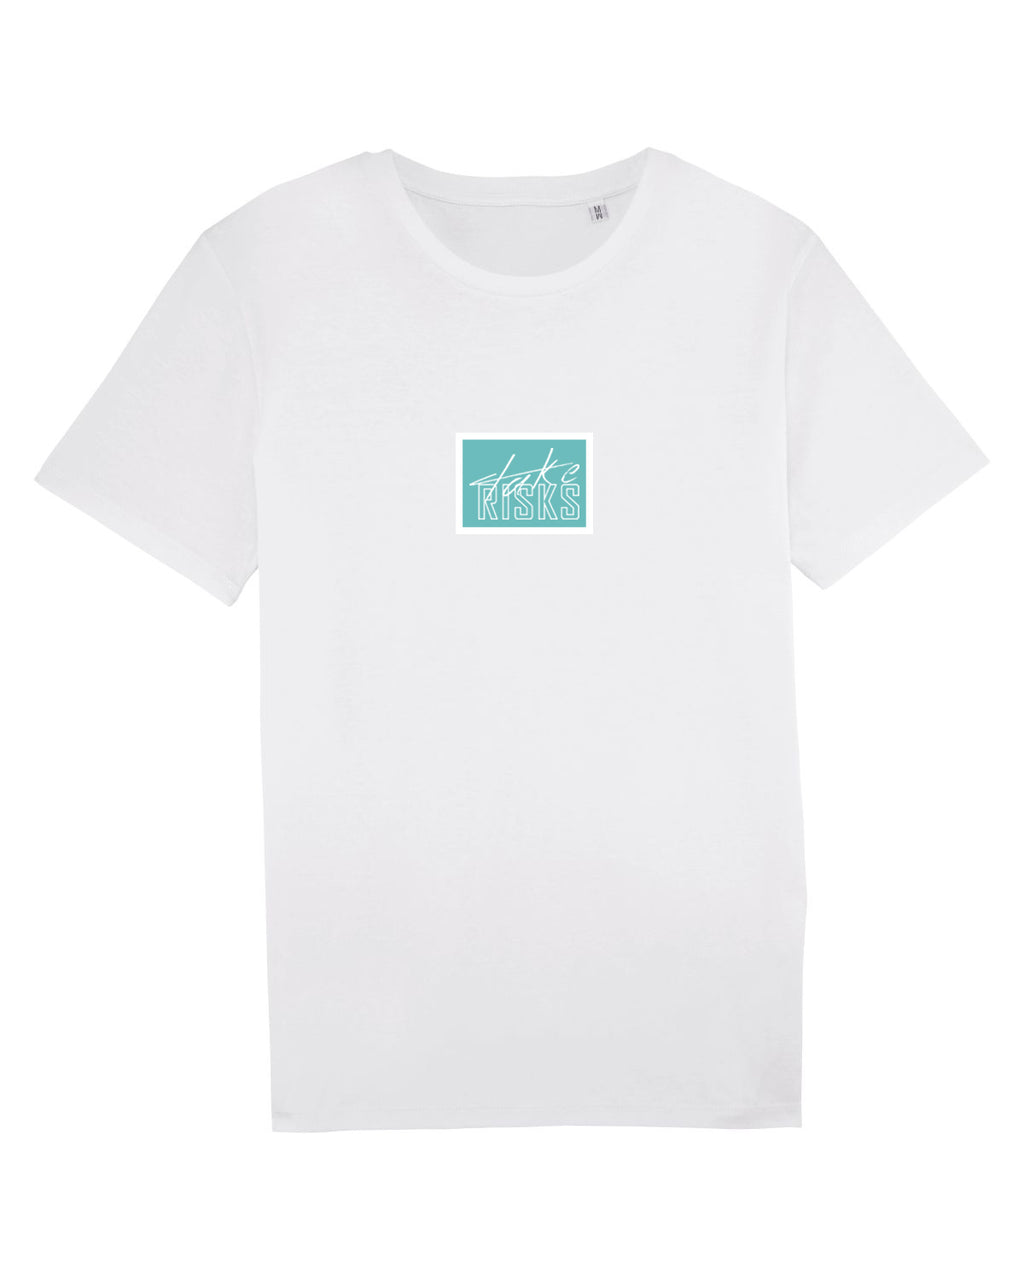 Take Risks White/Turq Patch T-Shirt